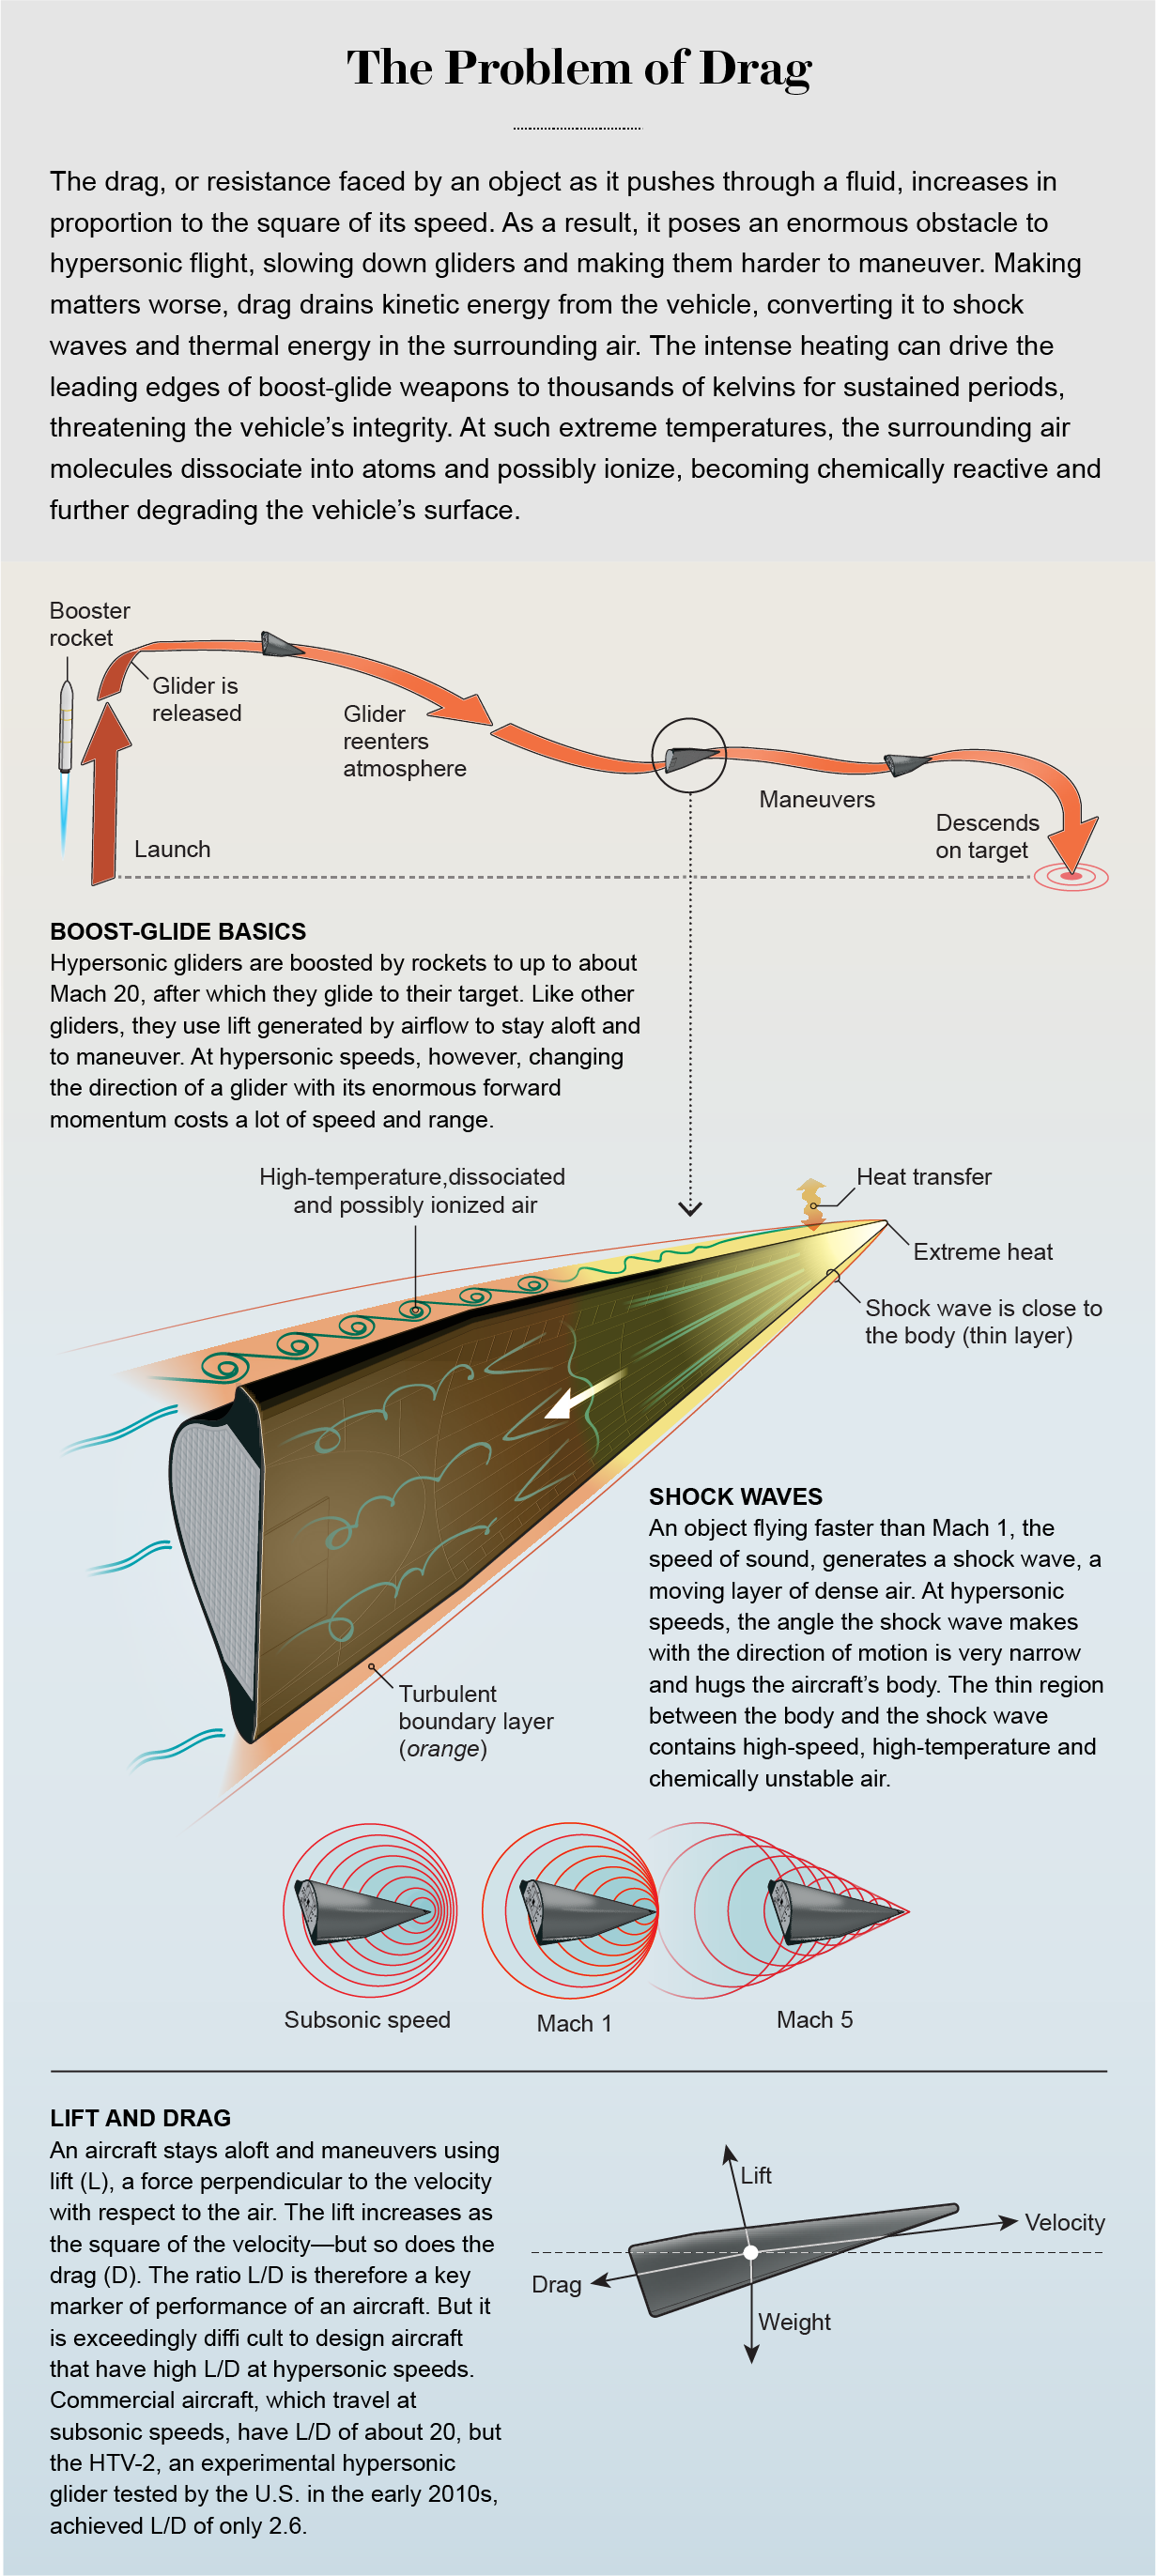 Graphic explains how the physics of drag makes hypersonic gliders slow, difficult to maneuver and vulnerable to damage.